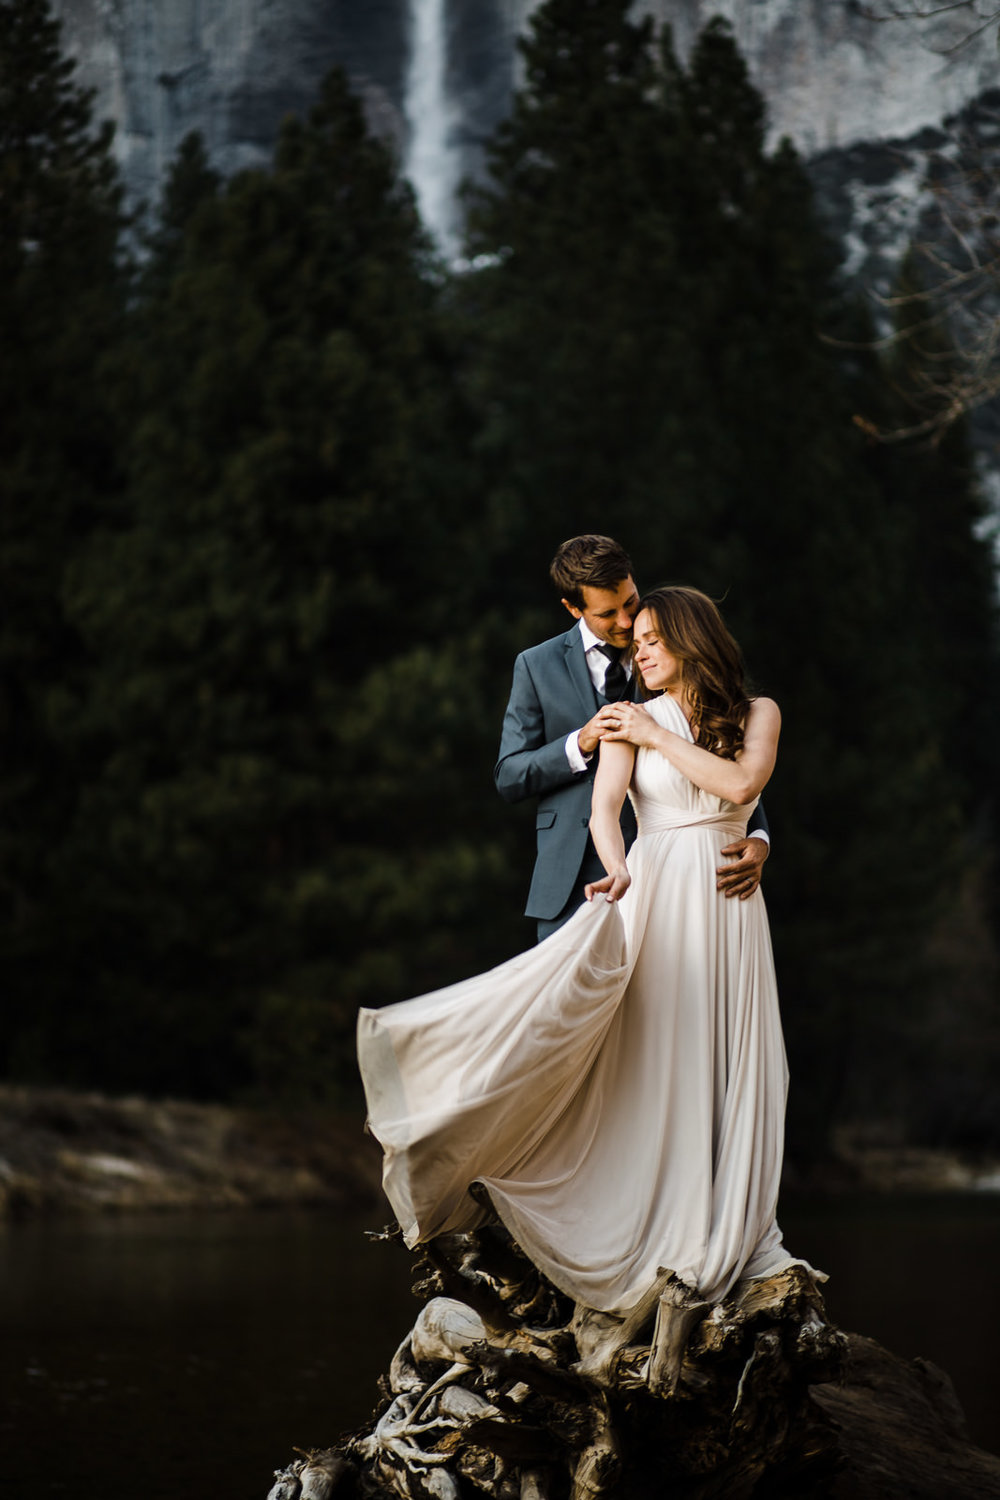 winter-elopement-california-intimate-adventure-photographer-yosemite-national-park-daniela-vallant-wedding-elopement-photographer-intimate-wedding-photographer-yosemite-falls